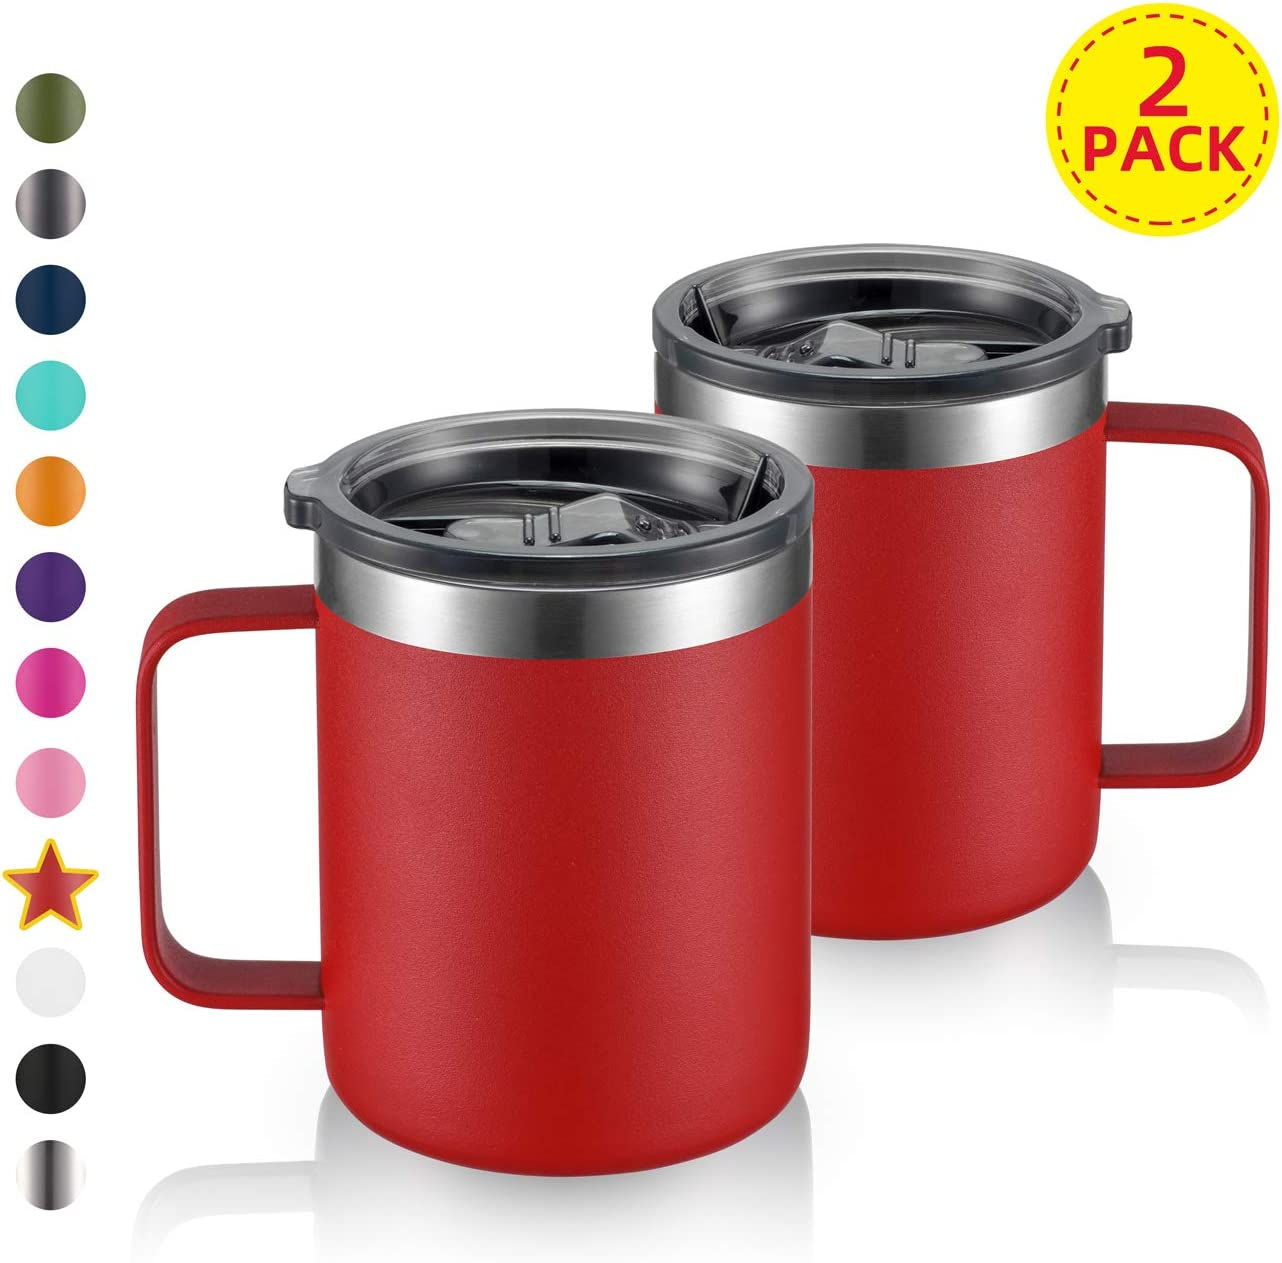 12oz Stainless Steel Insulated Coffee Mug with Handle, Double Wall Vacuum Tumbler Cup with Sliding Lid, Red, 2 Pack